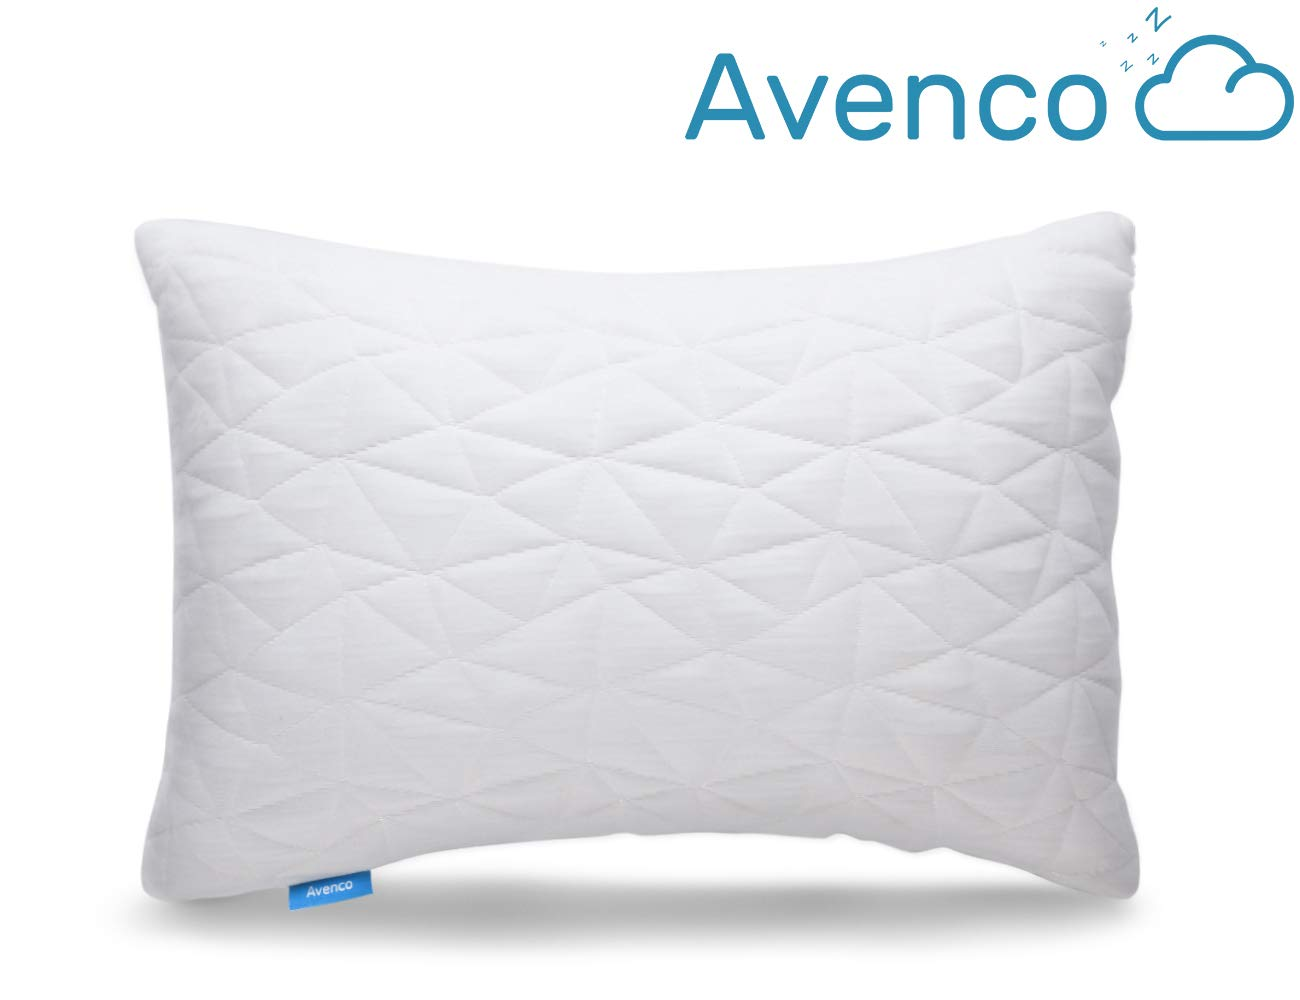 Avenco Bed Pillows for Sleeping, Adjustable Shredded Memory Foam Pillow with Removable Breathable Cover, Good for Back, Side Sleepers, CertiPUR-US Foam, Standard Size 20